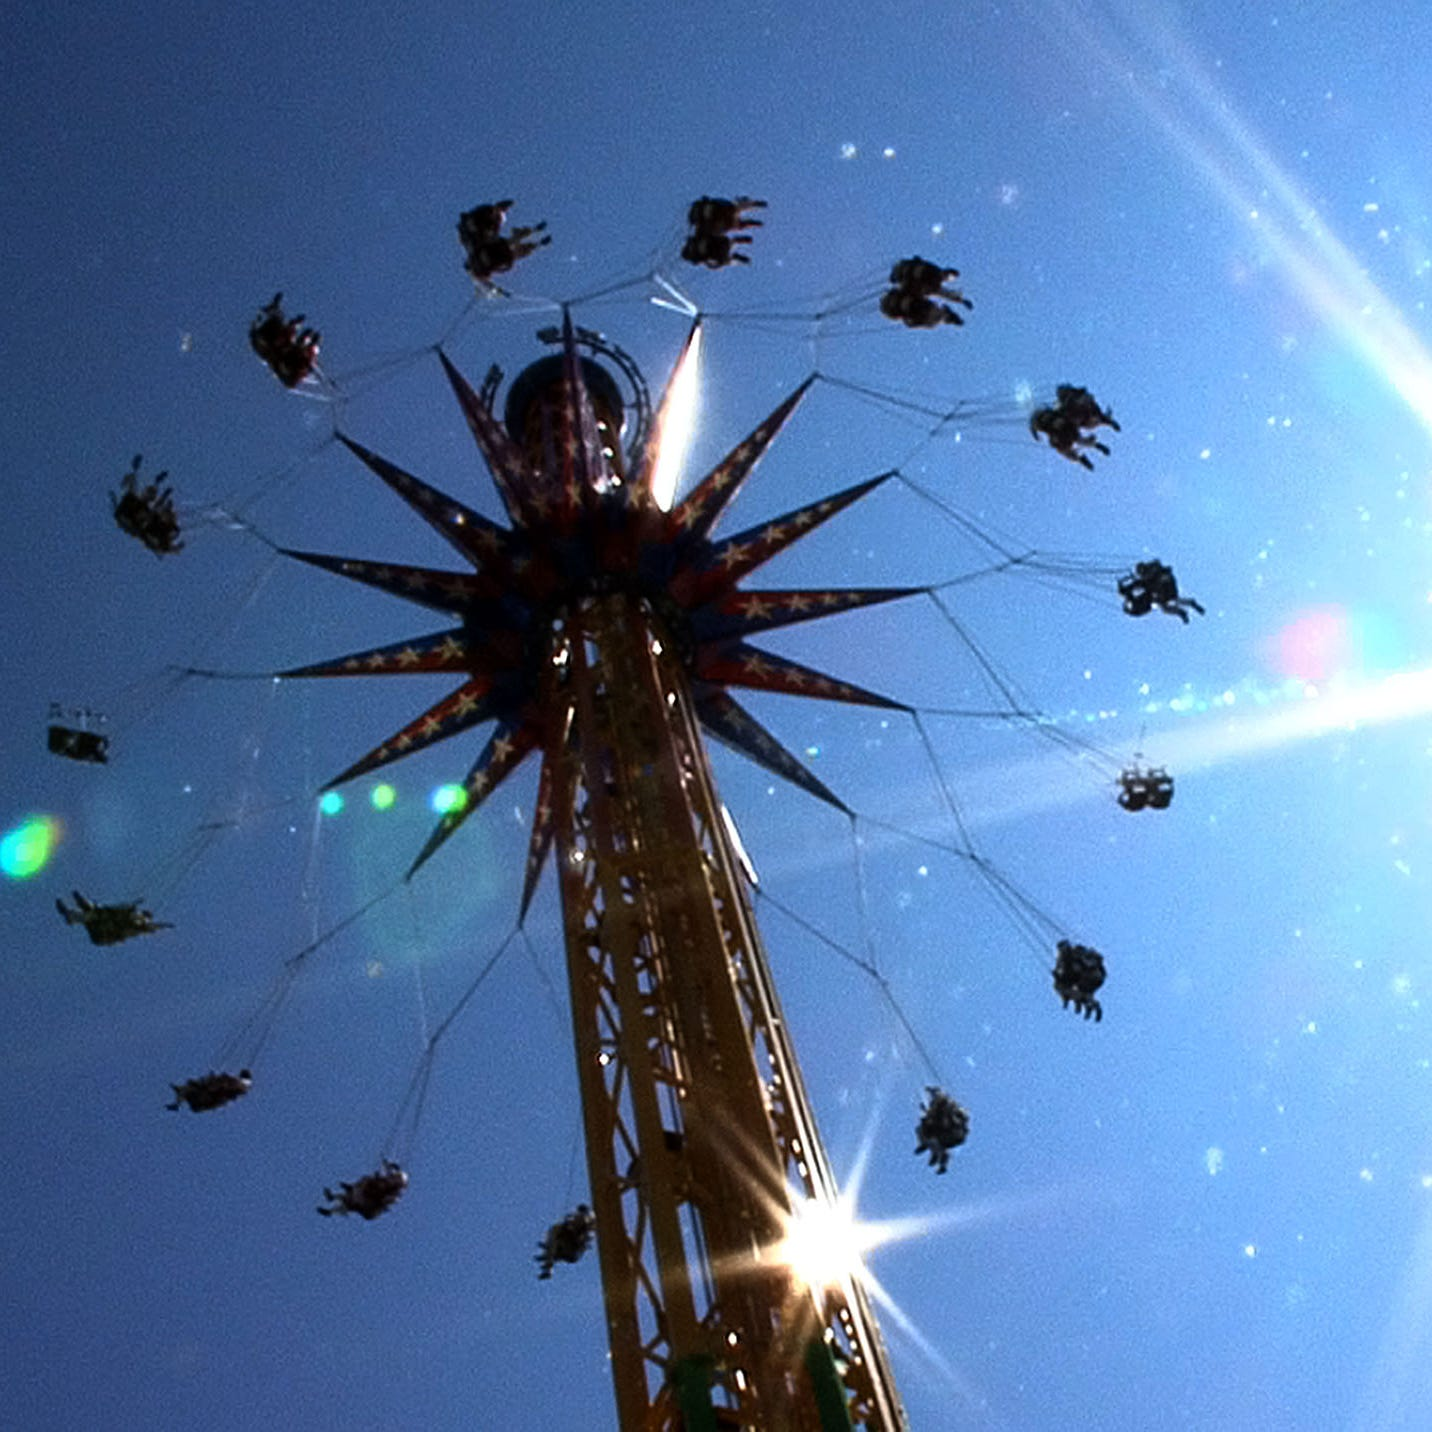 The SkyScreamer ride, pictured in 2012 at Six Flags Great Adventure in Jackson.